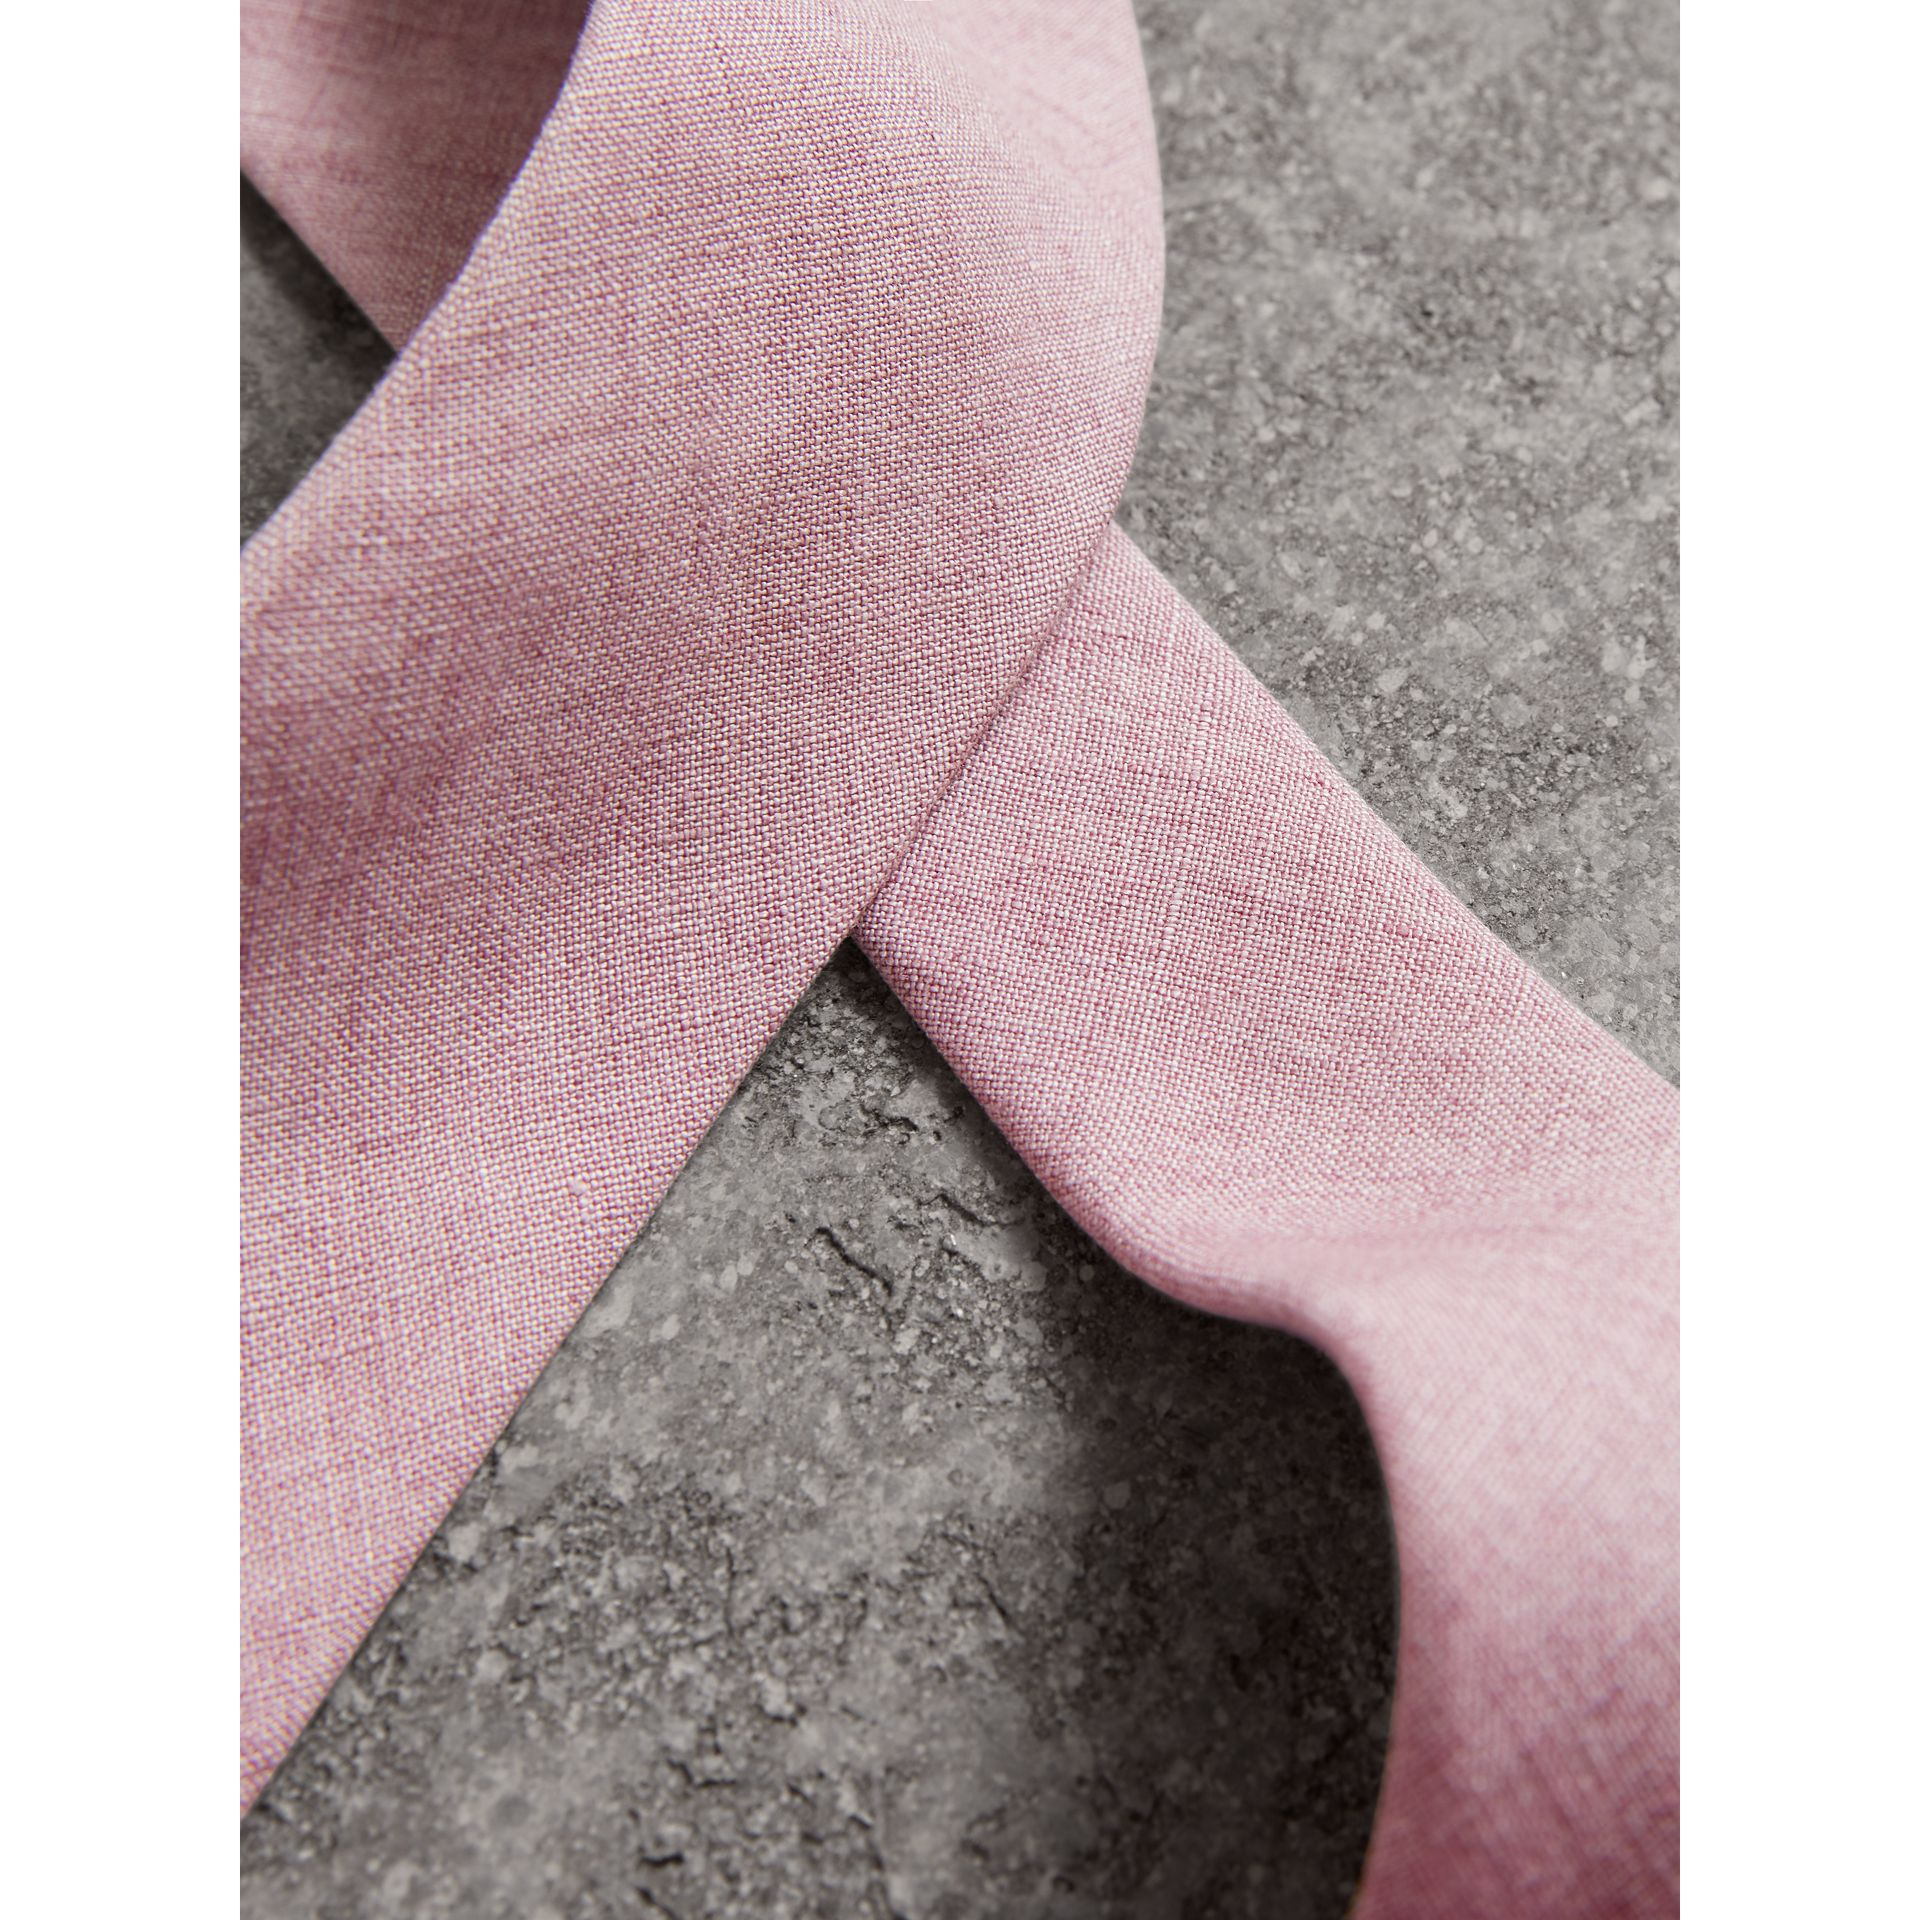 Slim Cut Linen Tie in Pink Heather - Men | Burberry Canada - gallery image 1